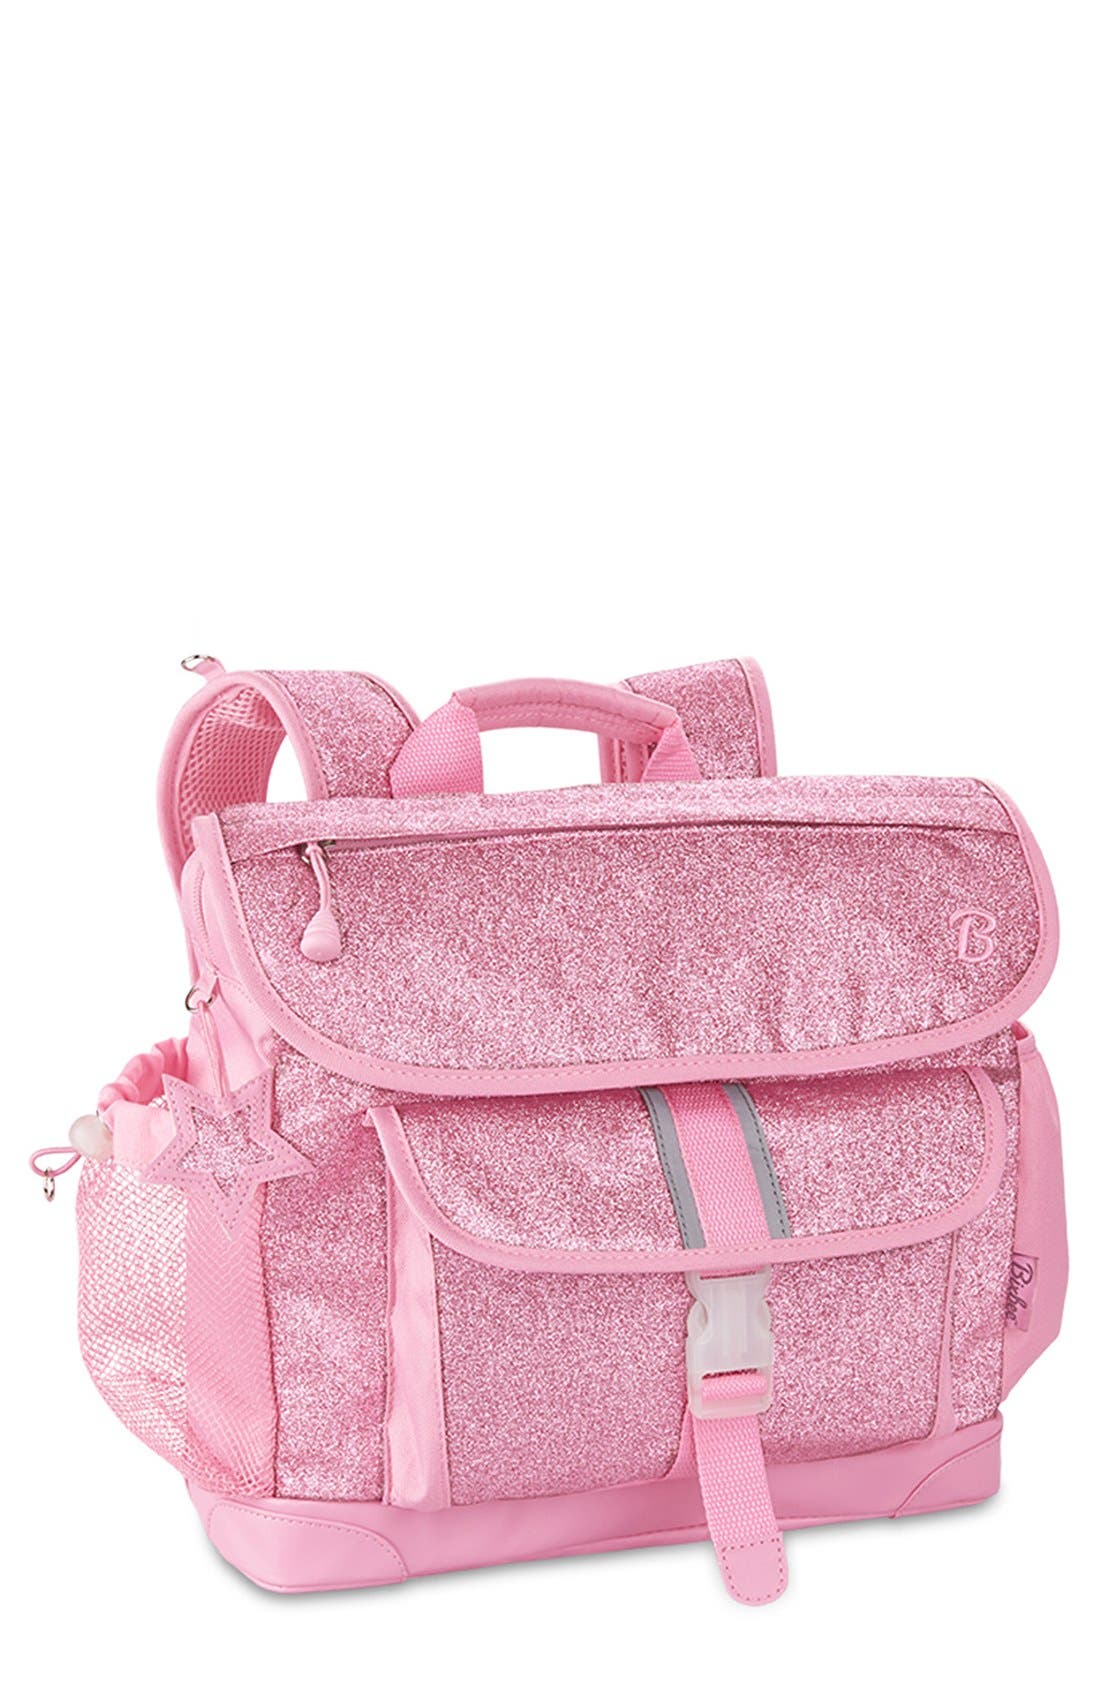 'Large Sparkalicious' Backpack,                         Main,                         color, Pink